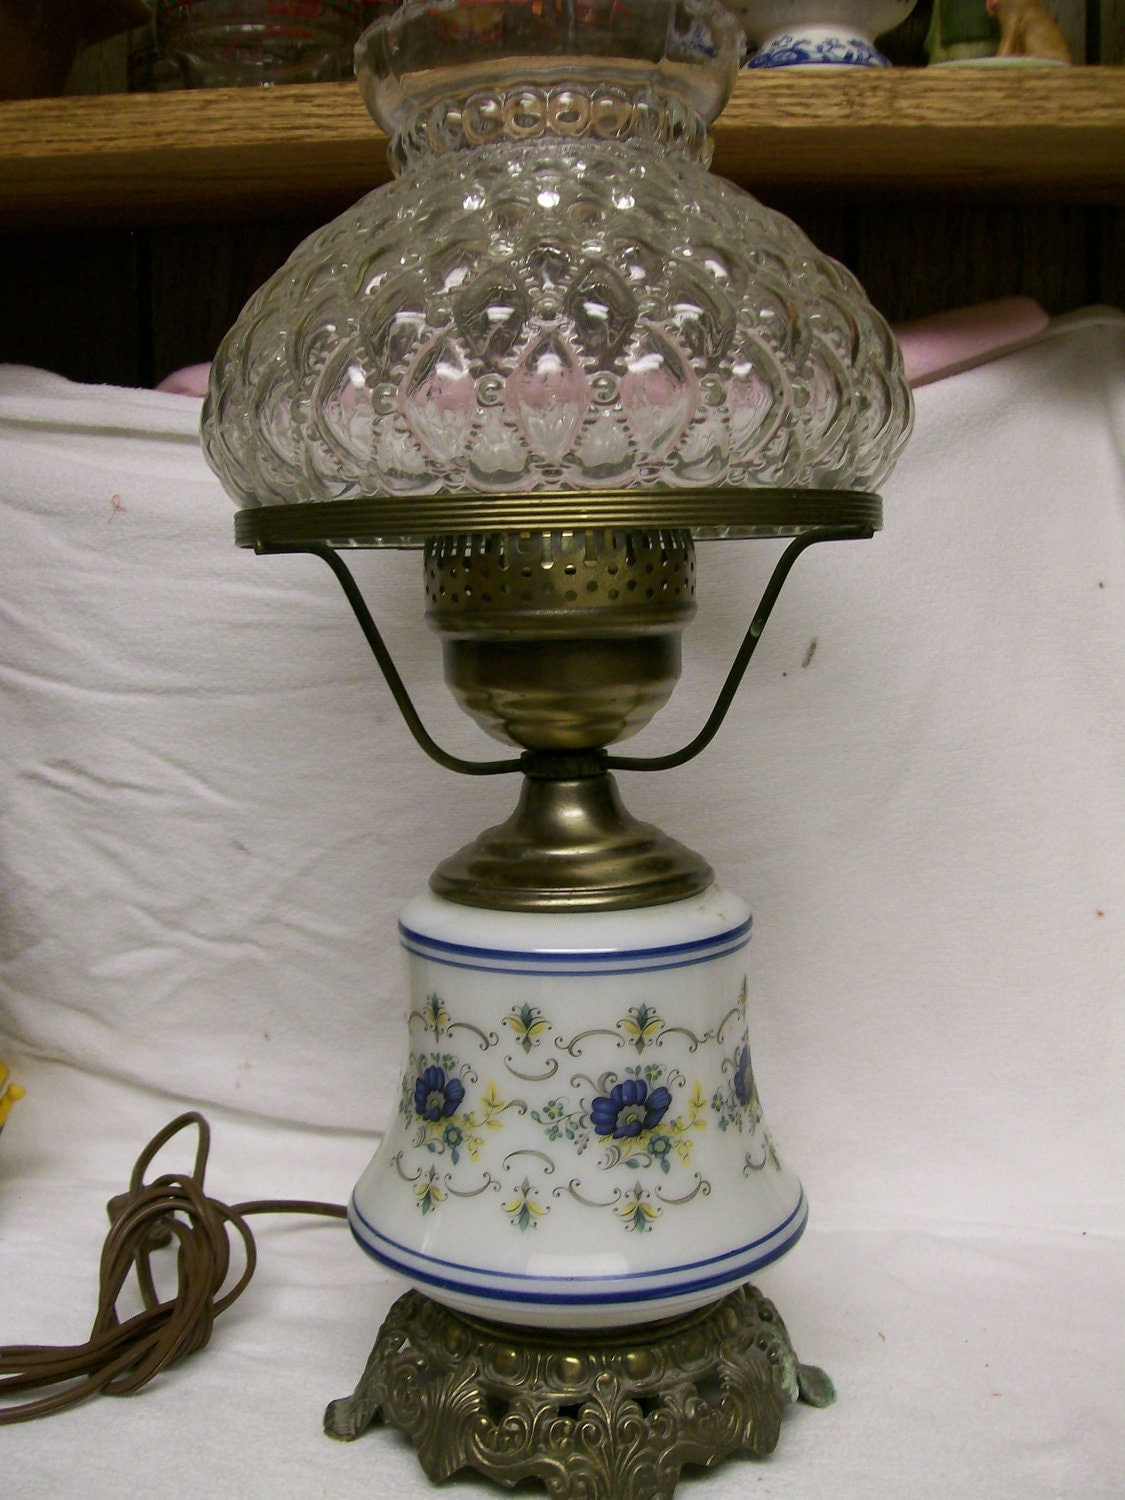 1973 Quoizel Hurricane Lamp Vintage Abigail Adams Inspired